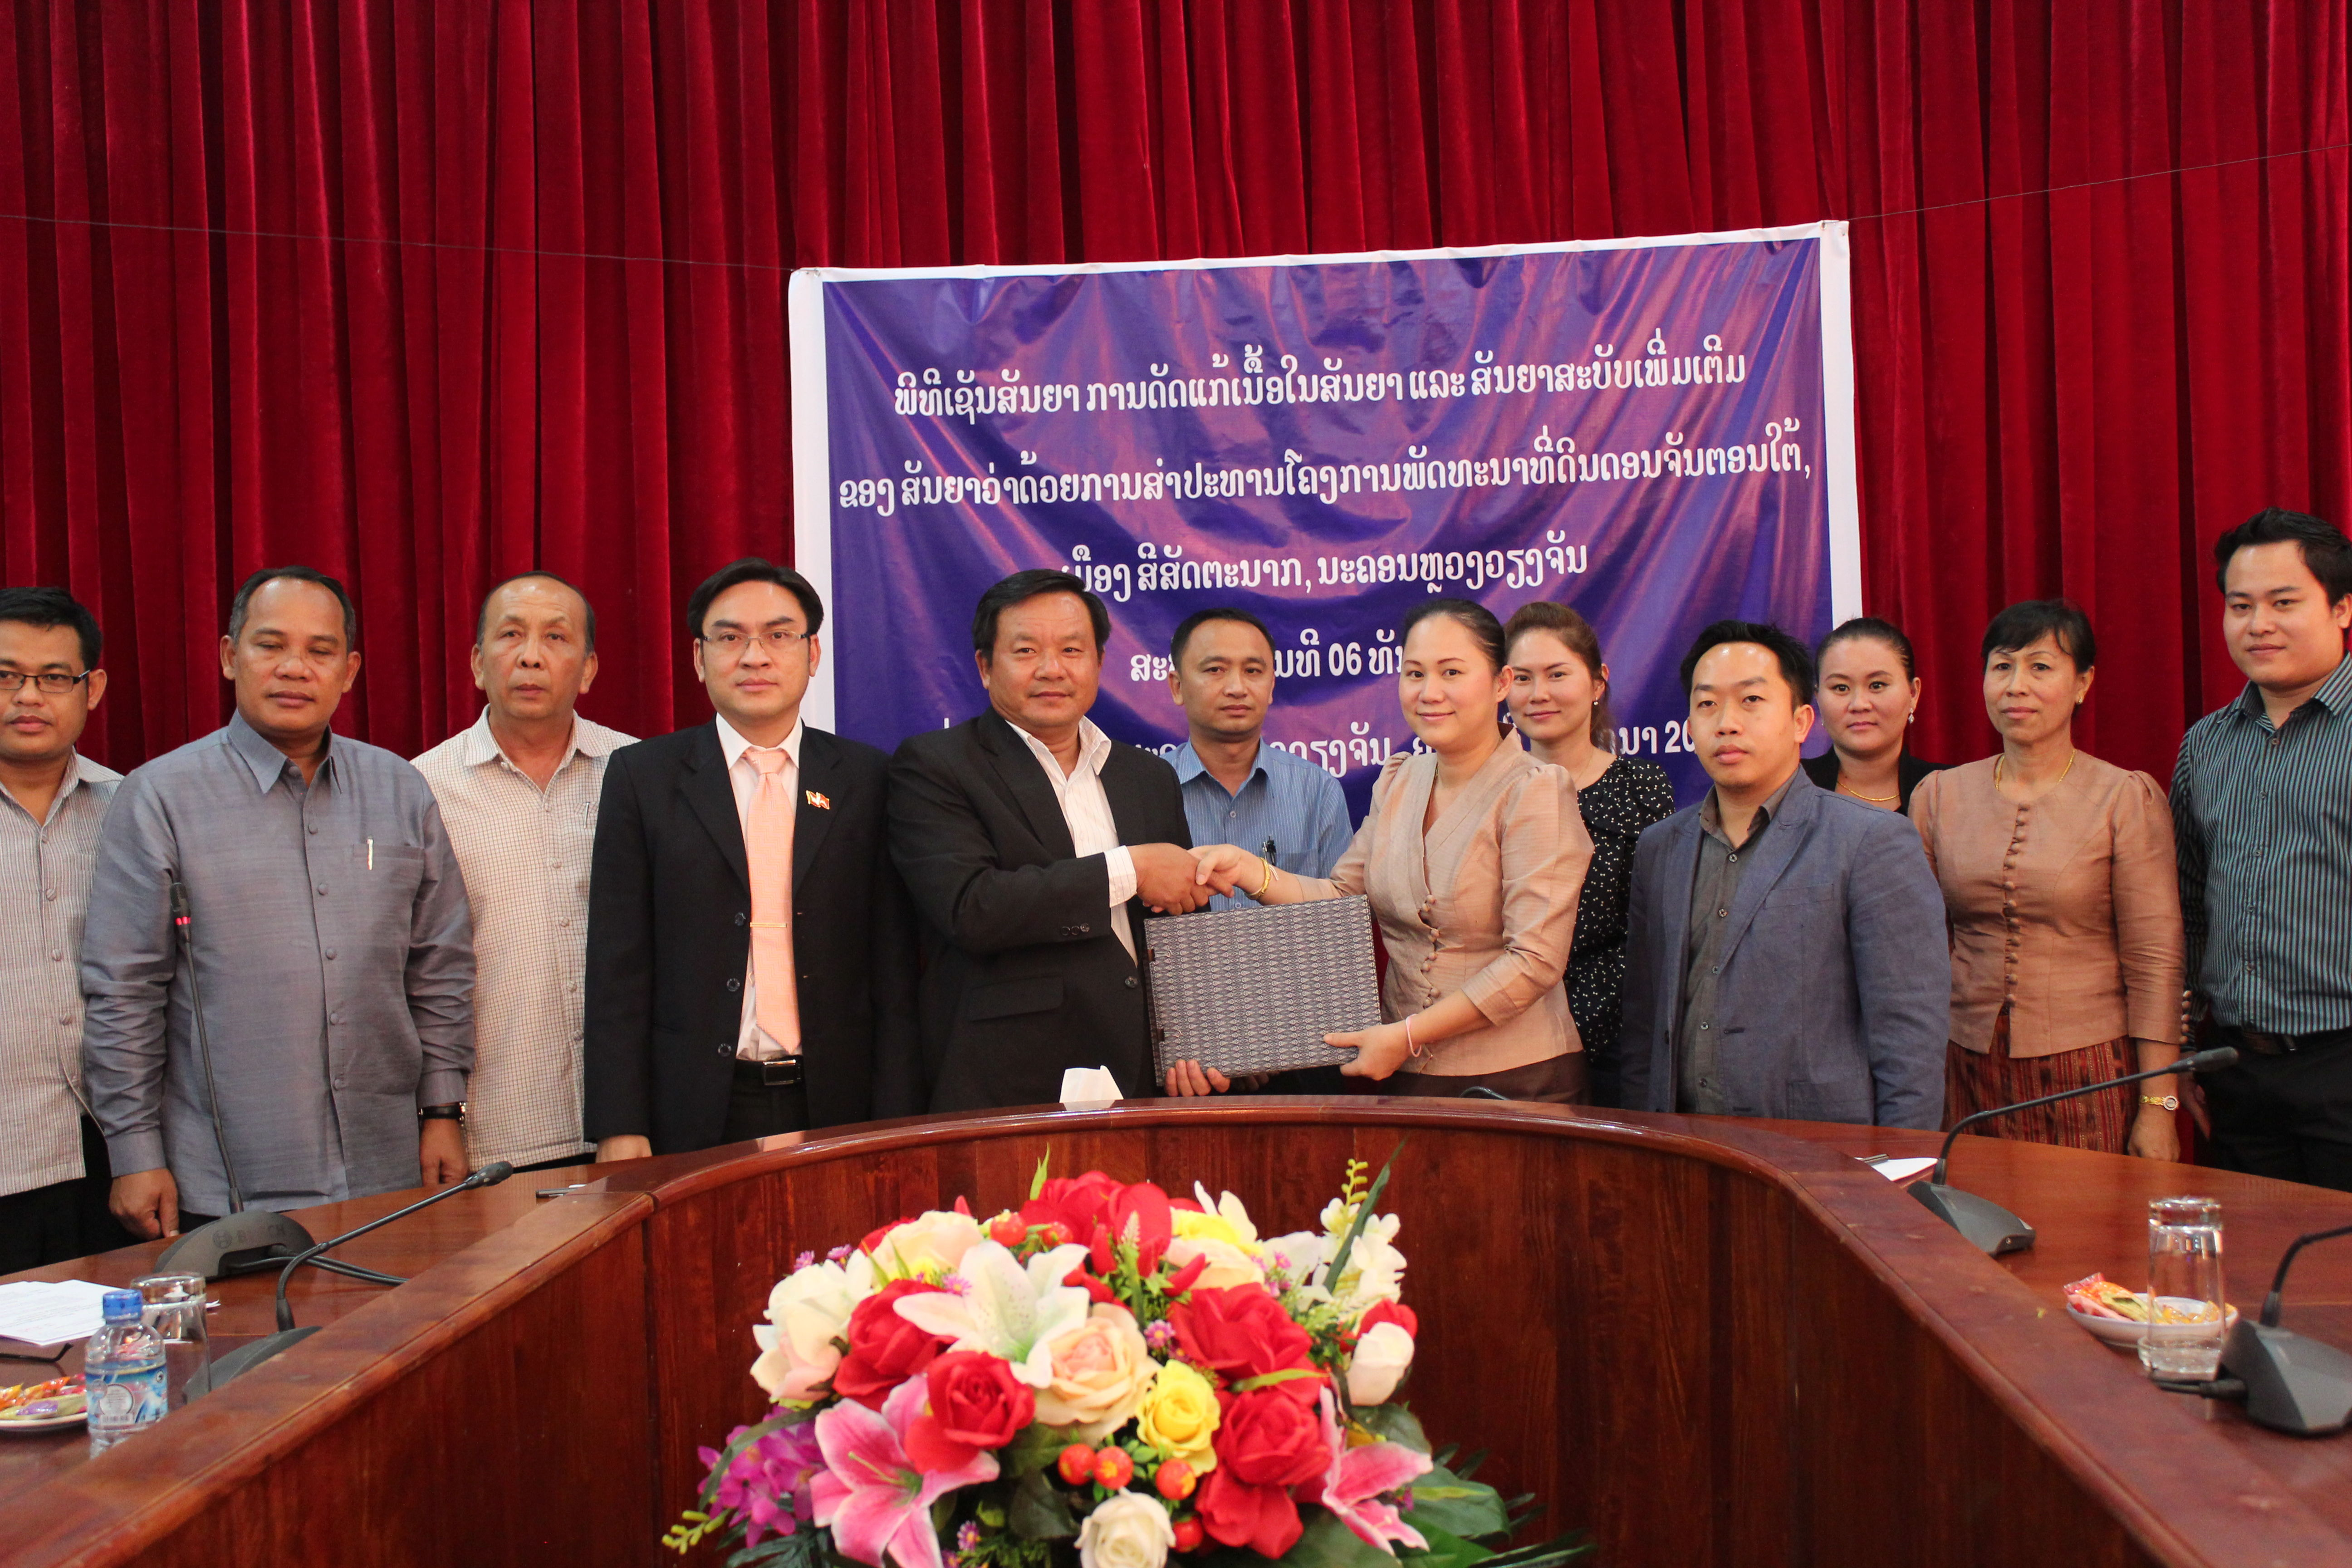 Amendment agreement for land concession signing ceremony, Southern Don Chan land development project. 27 June 2014